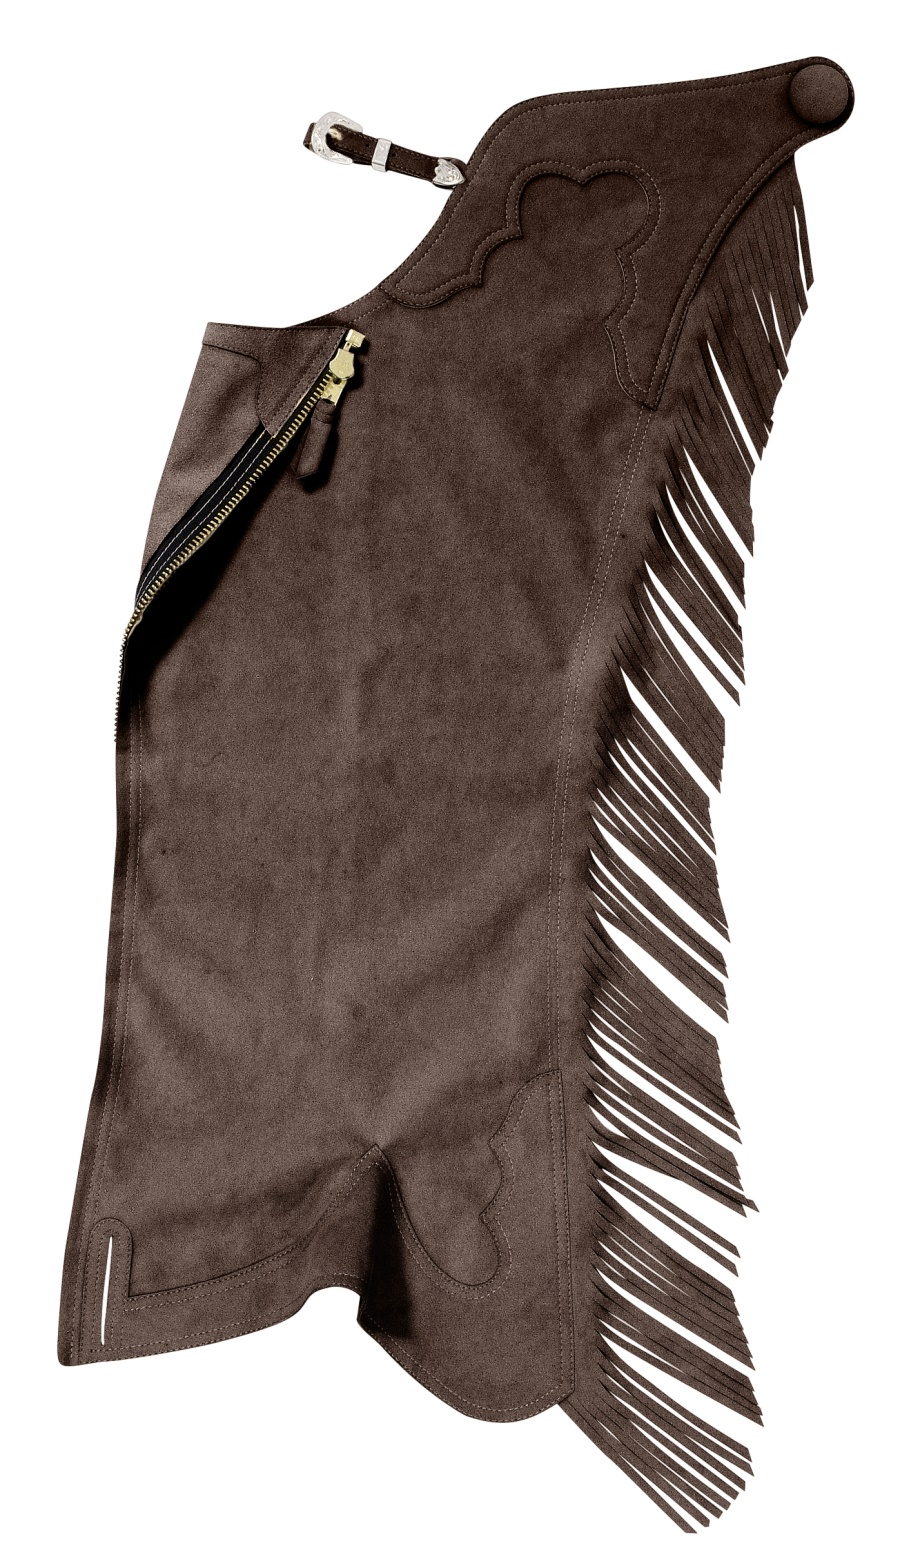 Hobby Horse Classic Ultrasuede Chaps Fringed